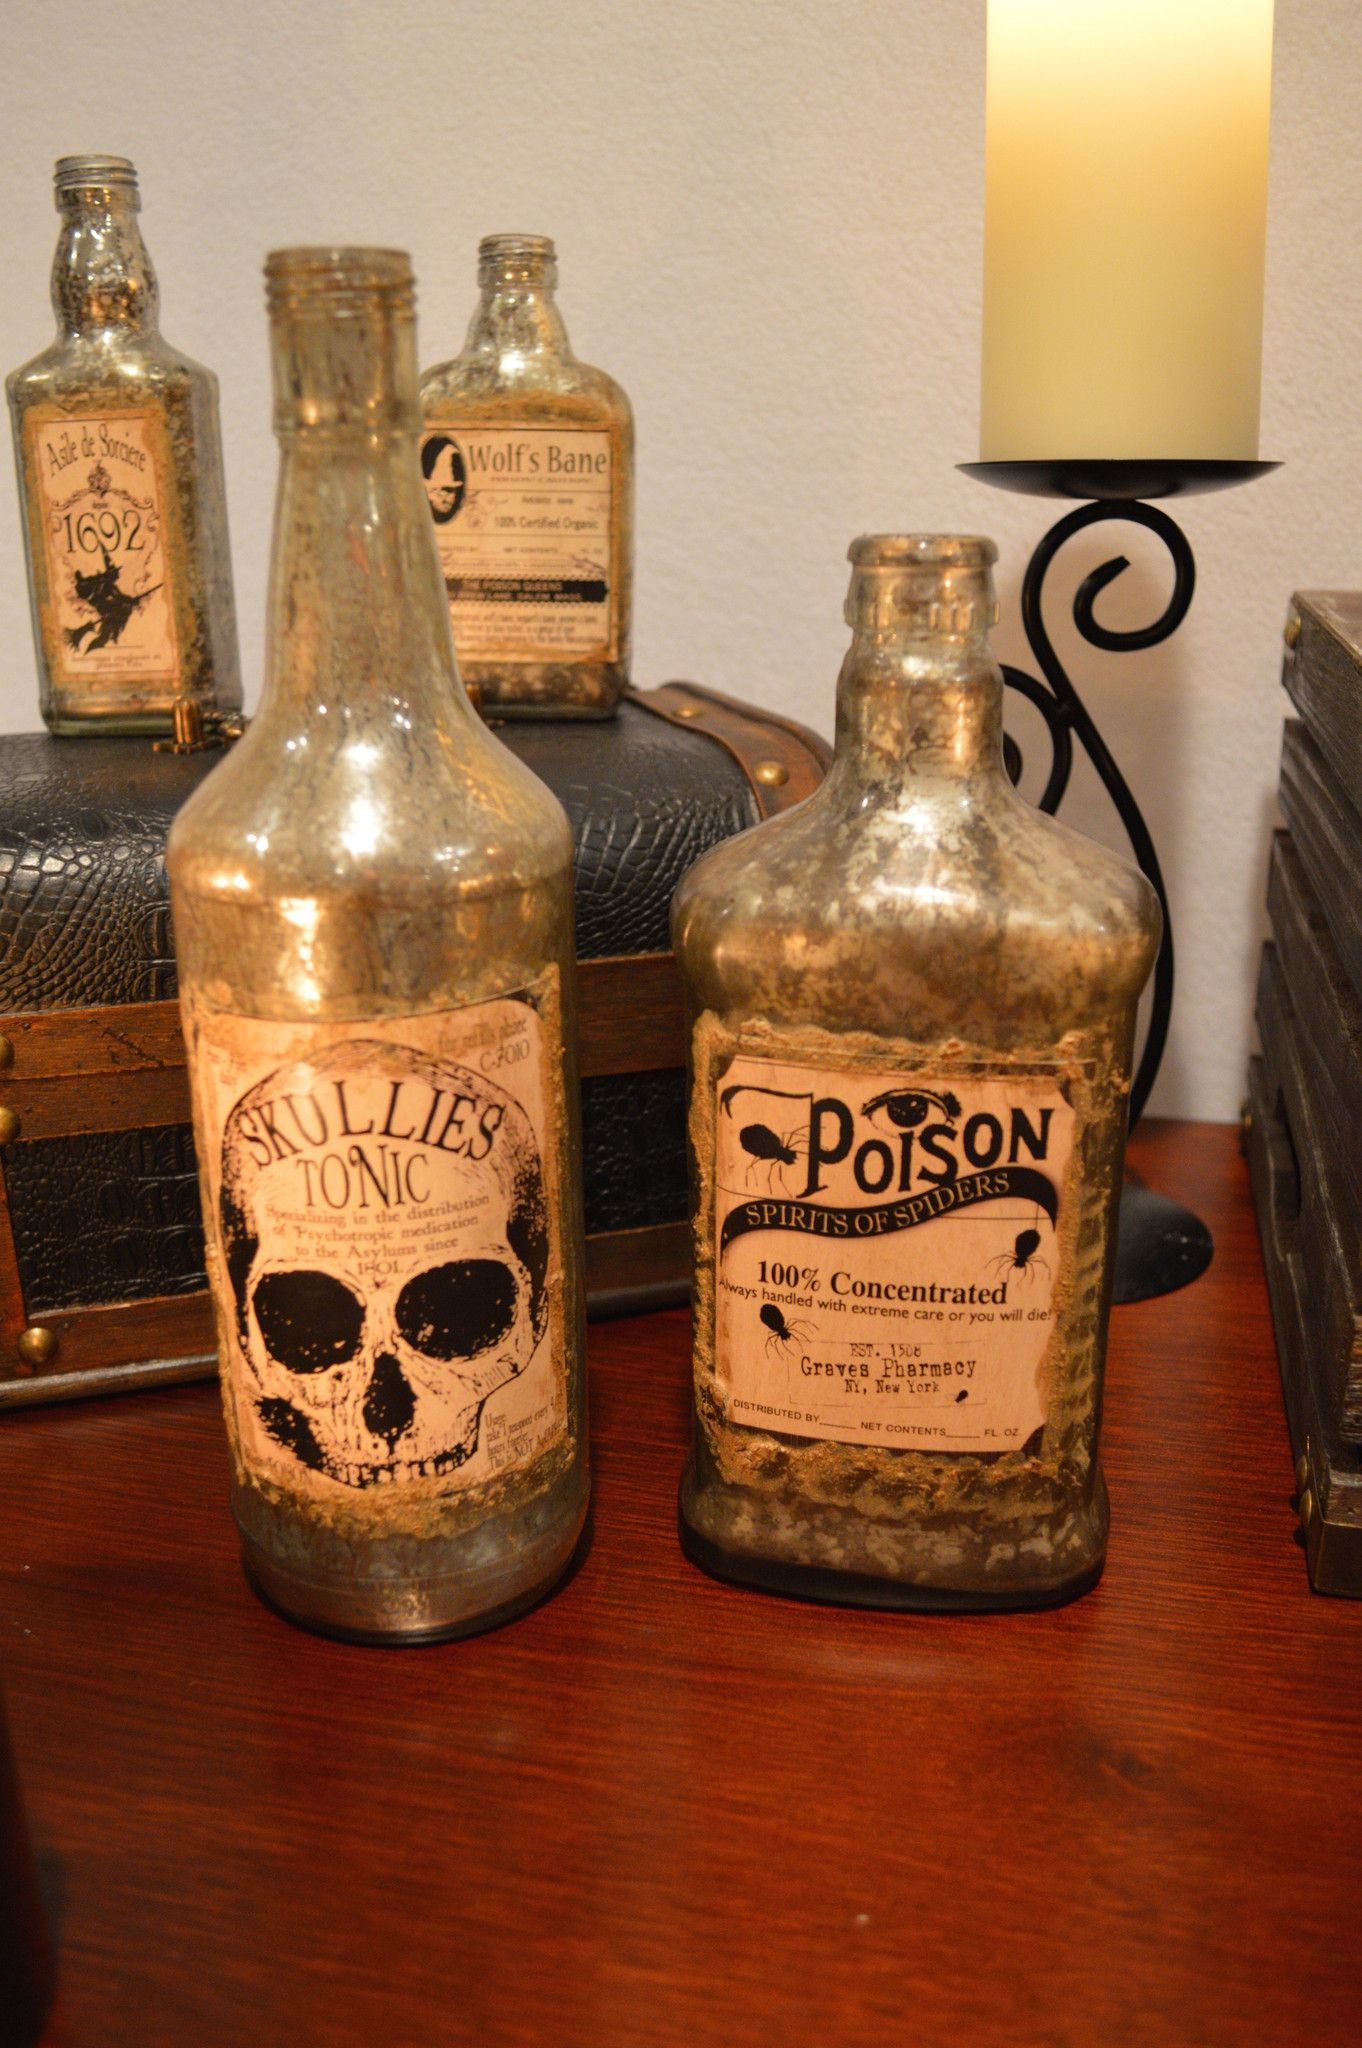 Antique Halloween Bottles (Large) - Bethany Lowe – Black Bow Halloween Shoppe. Keep your secret potions safe in these beautiful vintage bottles.  Your Spirits of Spiders and Skullies Tonic can be paired with the Antique Halloween Bottles (Small) or Antique Halloween Bottles (Medium) to create a creepy collection!  Sold as a set of 2 bottles.  Bethany Lowe. Glass with printed paper labels.  11 1/4″ x 8 3/4″.  FREE SHIPPING!